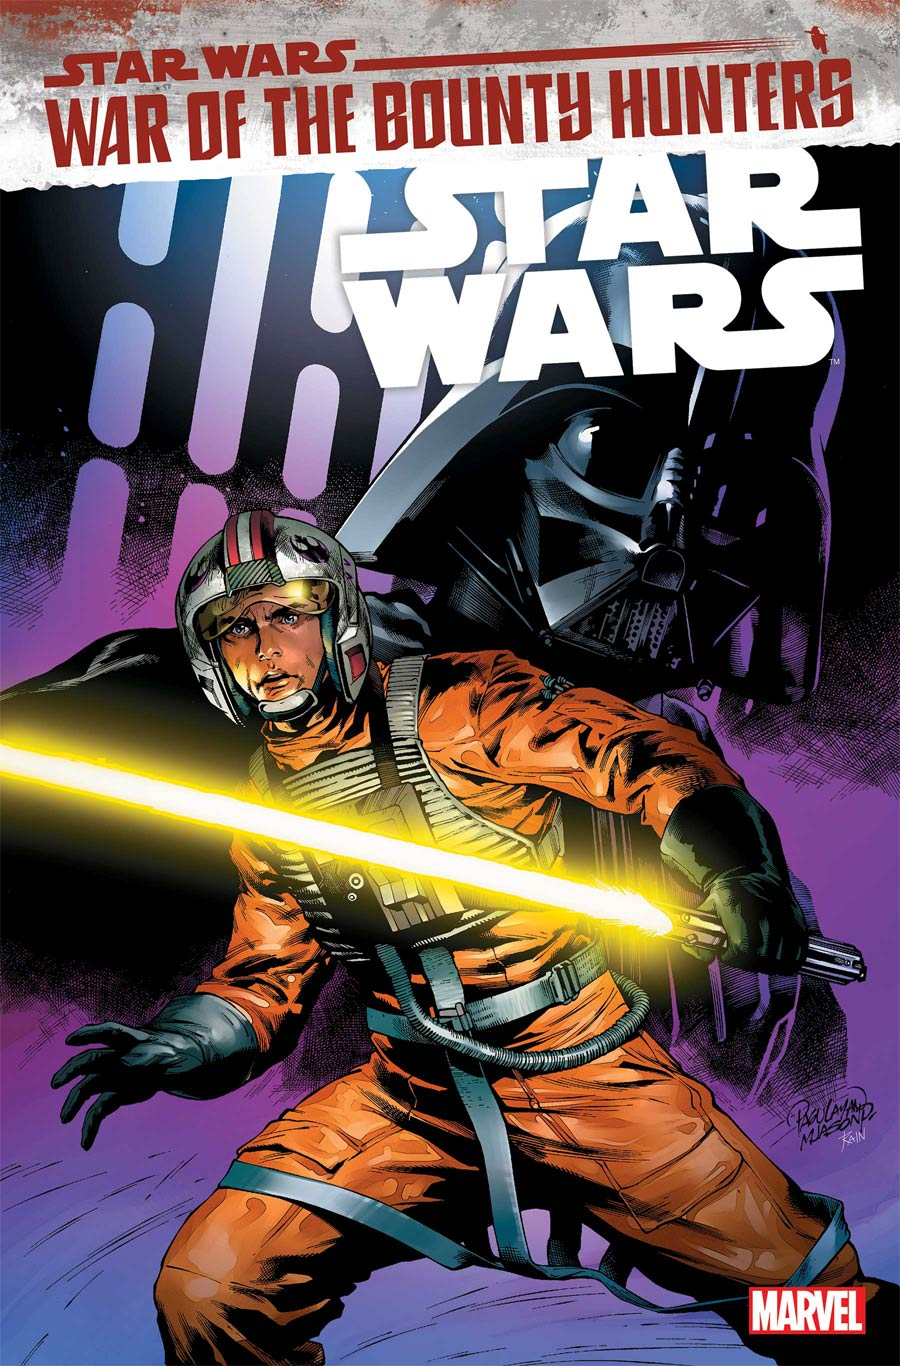 Star Wars Vol 5 #16 Cover A Regular Carlos Pagulayan Cover (War Of The Bounty Hunters Tie-In)